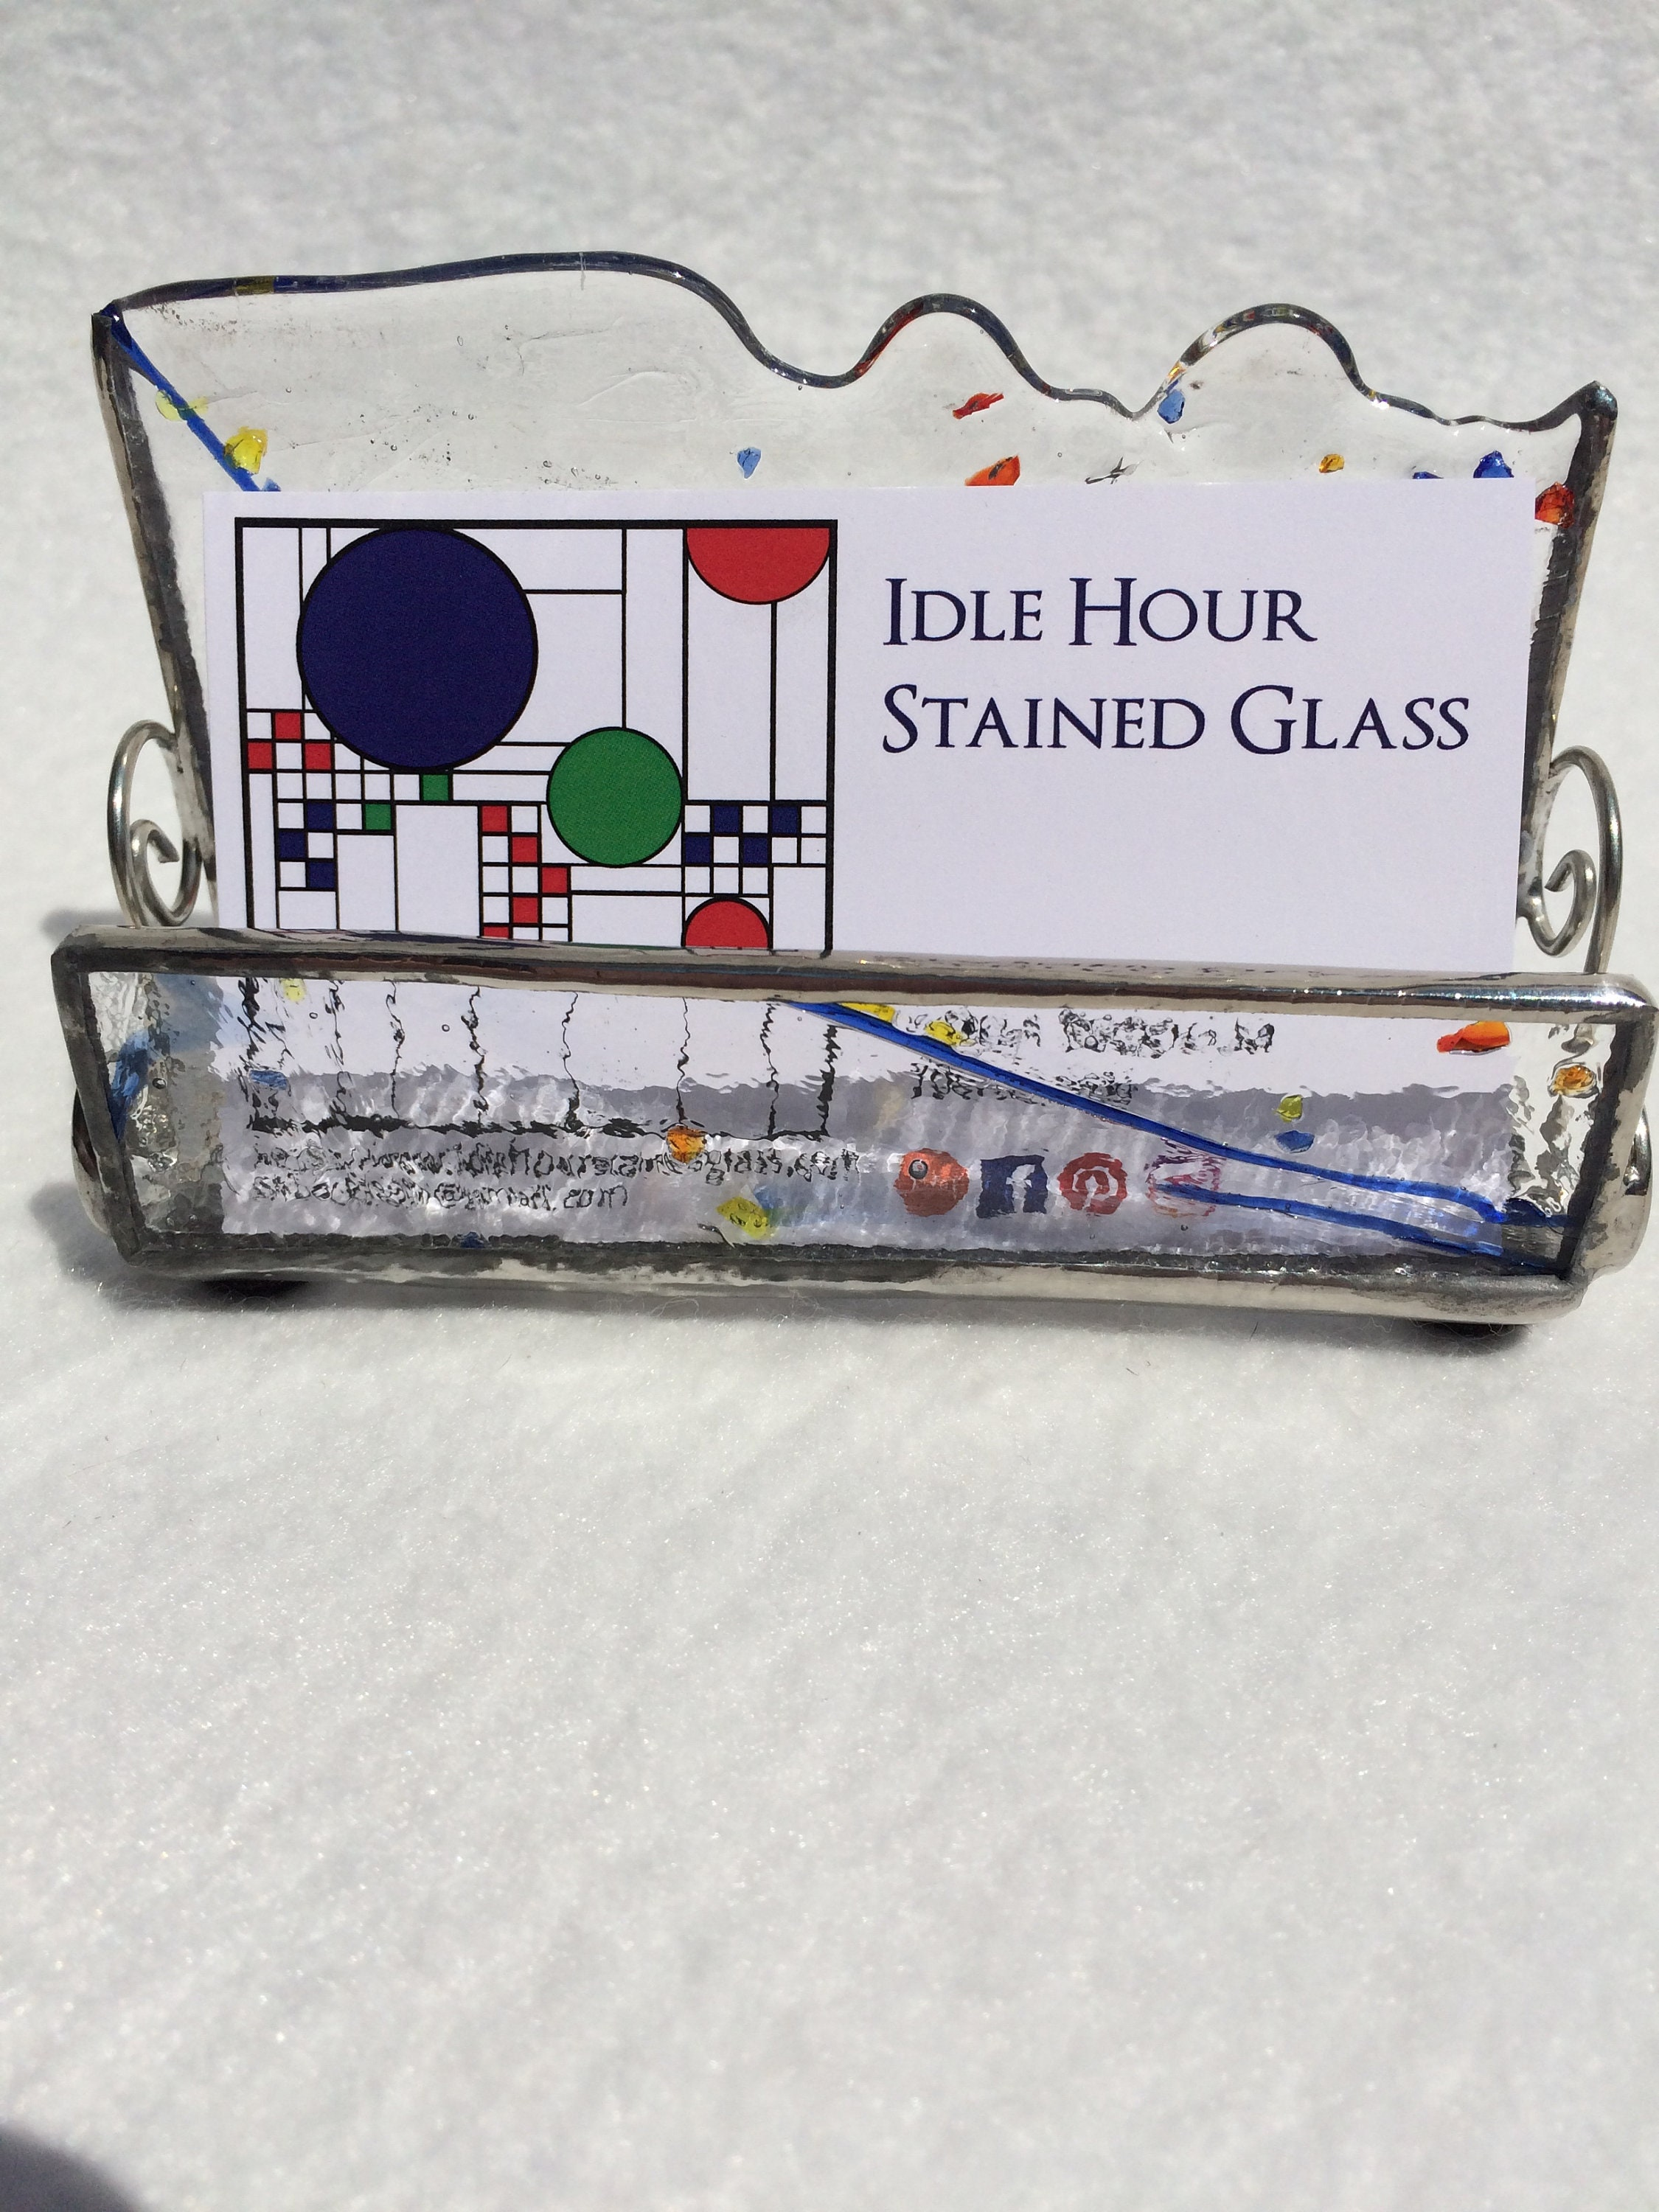 Stained glass business card holder business card holder office stained glass business card holder business card holder office decor clearblue business card holder desk accessory colourmoves